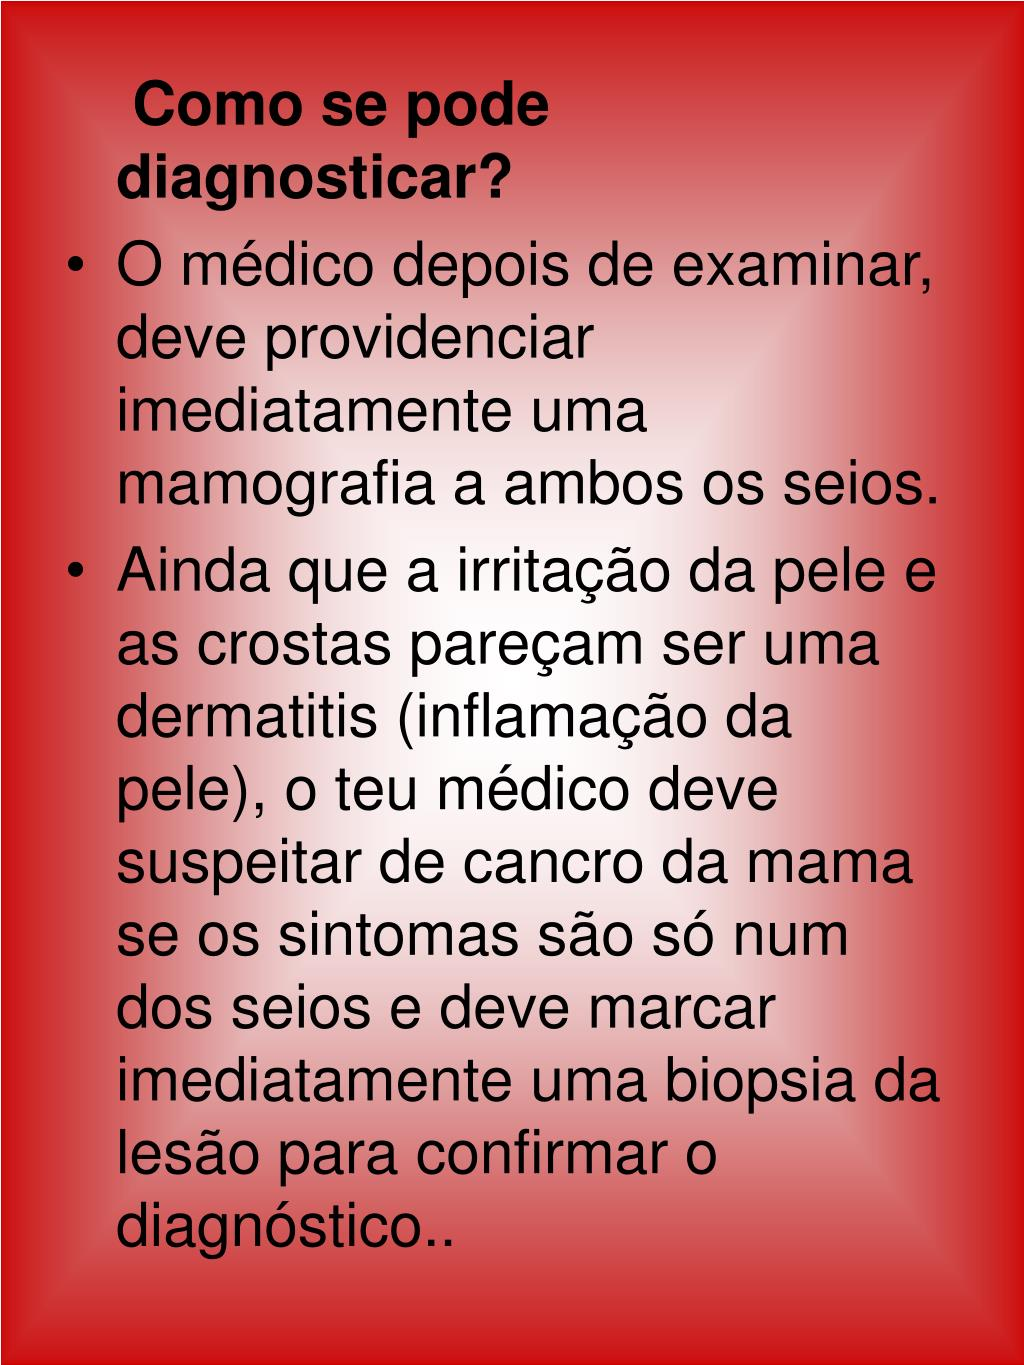 Como se pode diagnosticar?